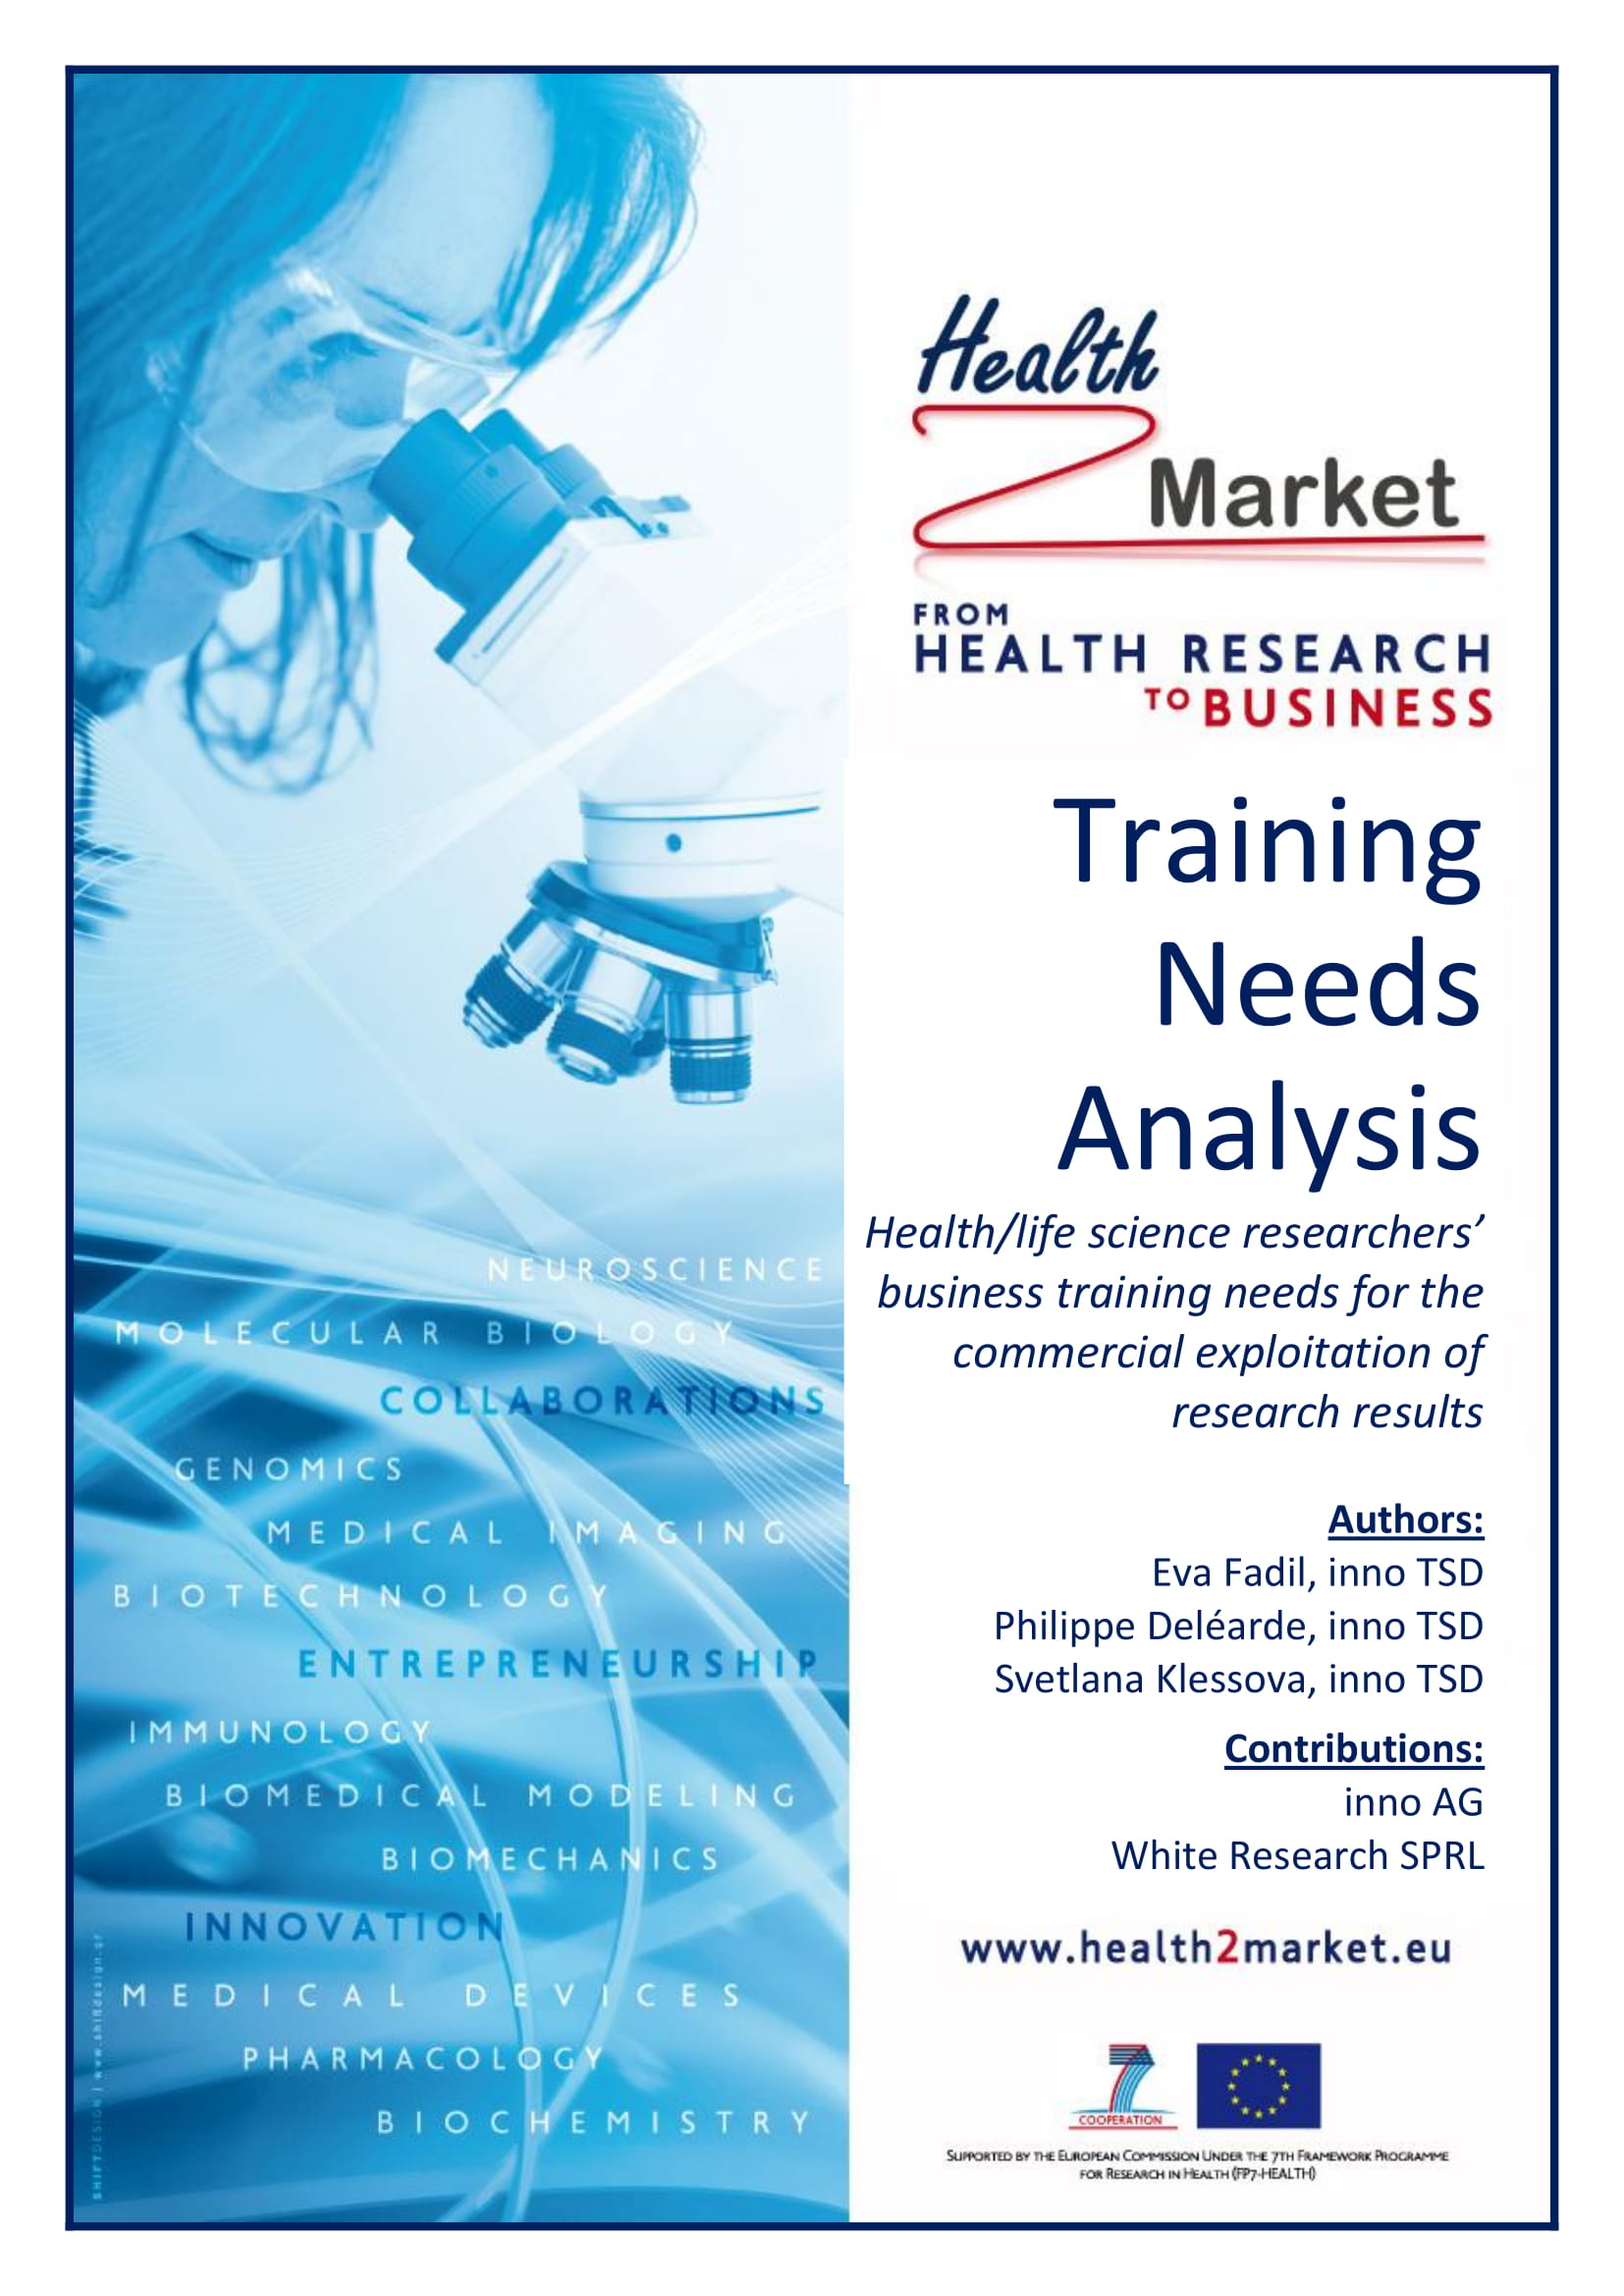 training gap analysis in the health industry for the identification of market needs example 001